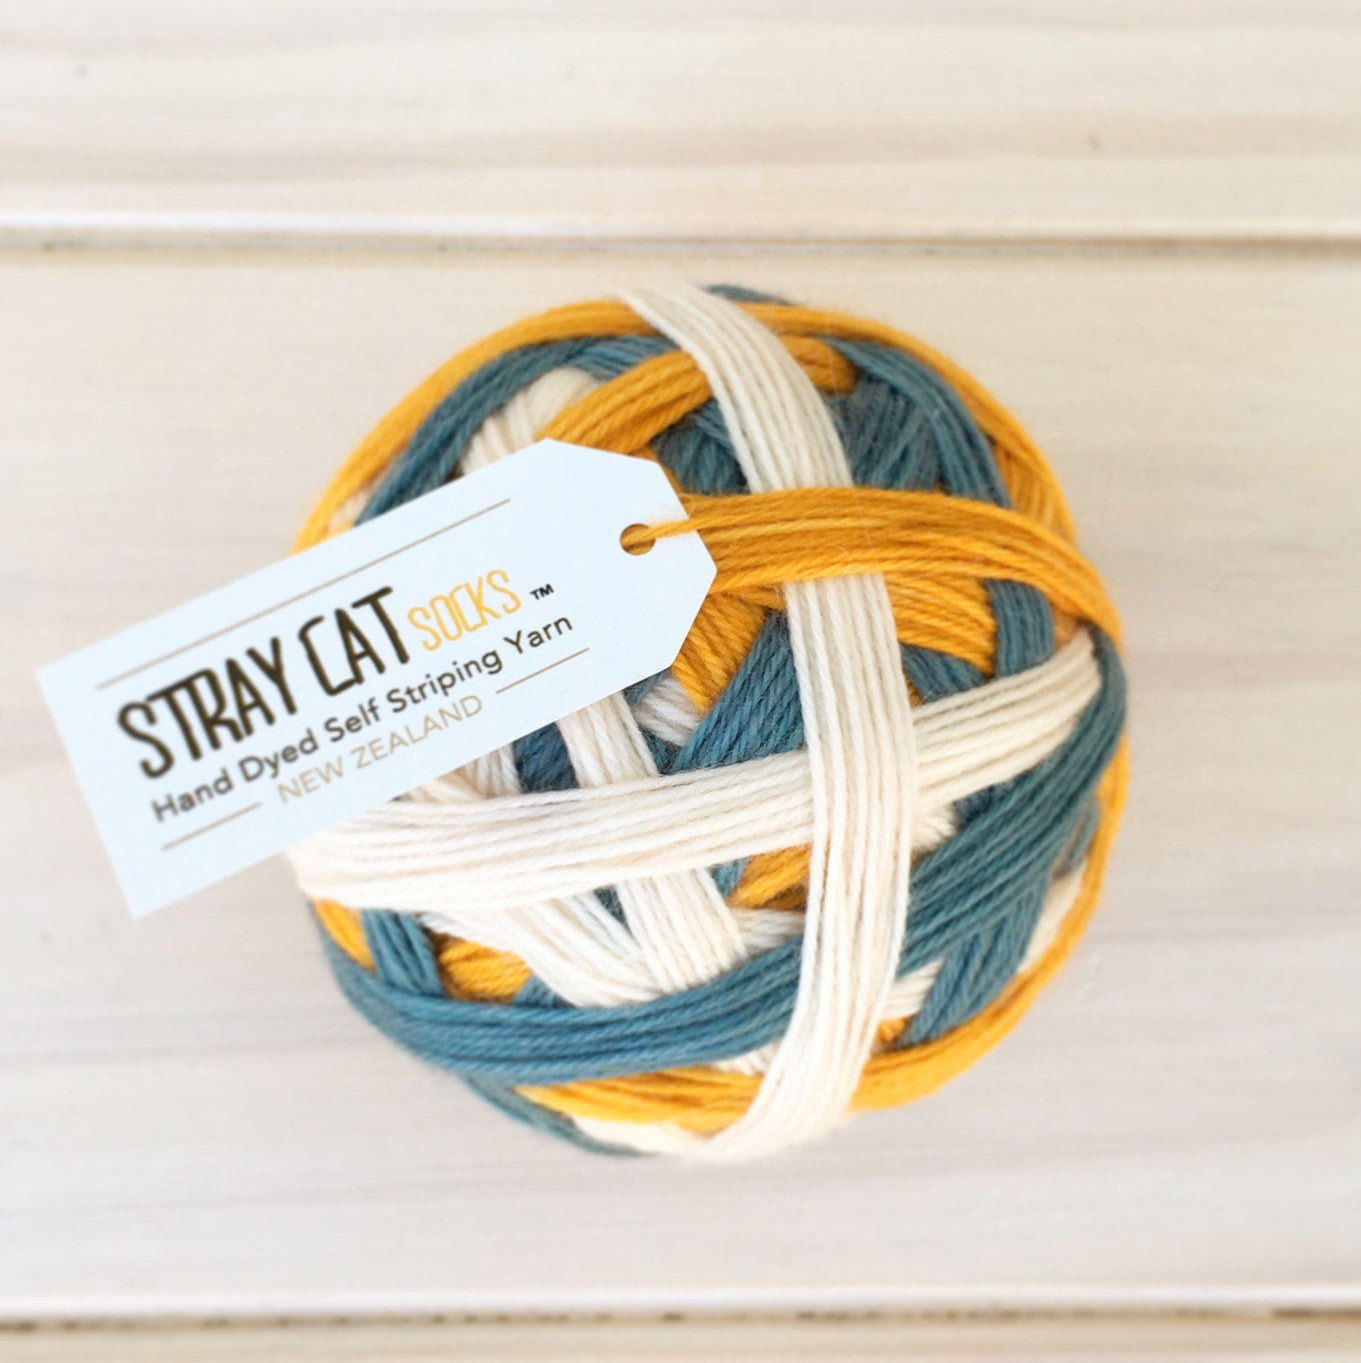 New Sock Yarn rescue cat - vibrant hand dyed self striping sock yarn qypvgiv